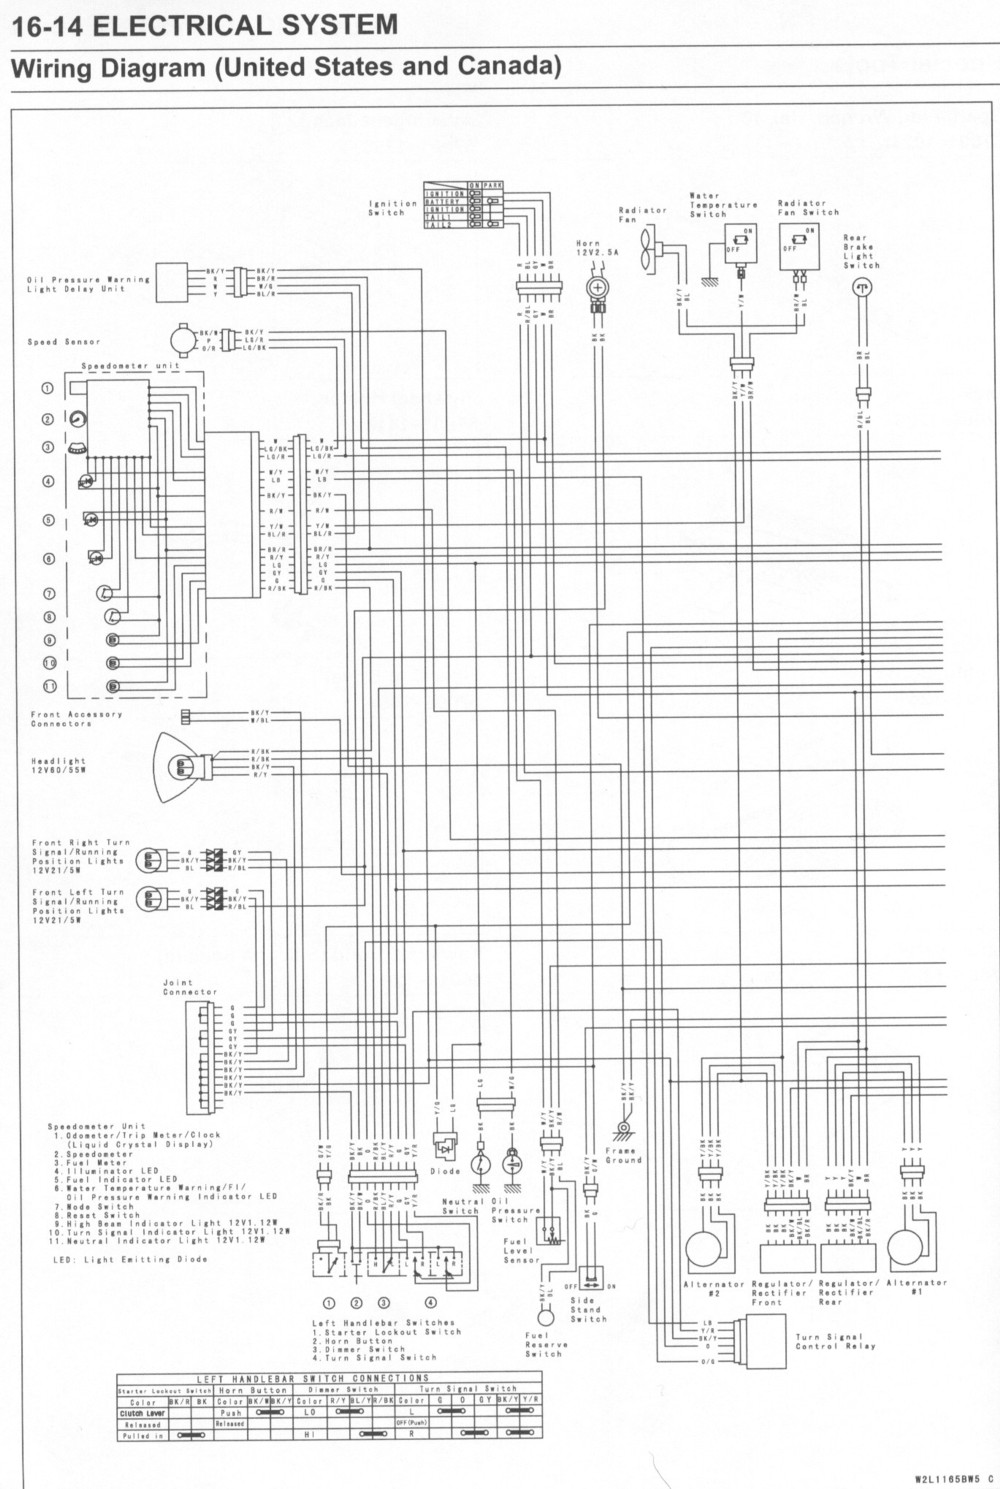 [DIAGRAM] 1999 Kawasaki Zx7 Wiring Diagram FULL Version HD